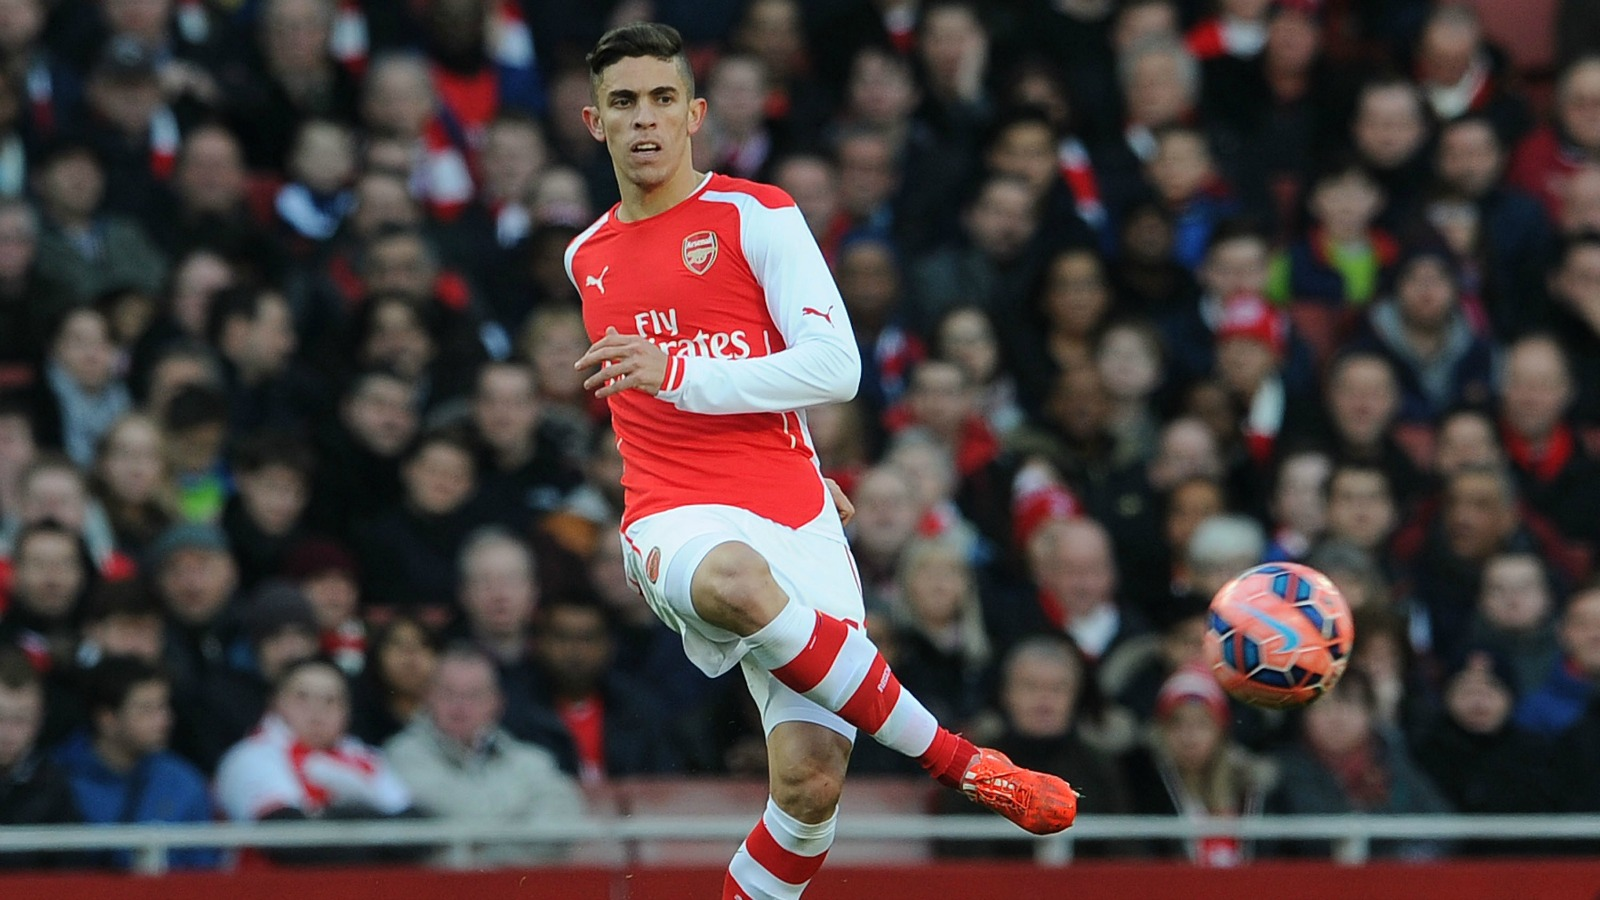 Arsenal's injury woes continue as Gabriel is ruled out for 8 weeks